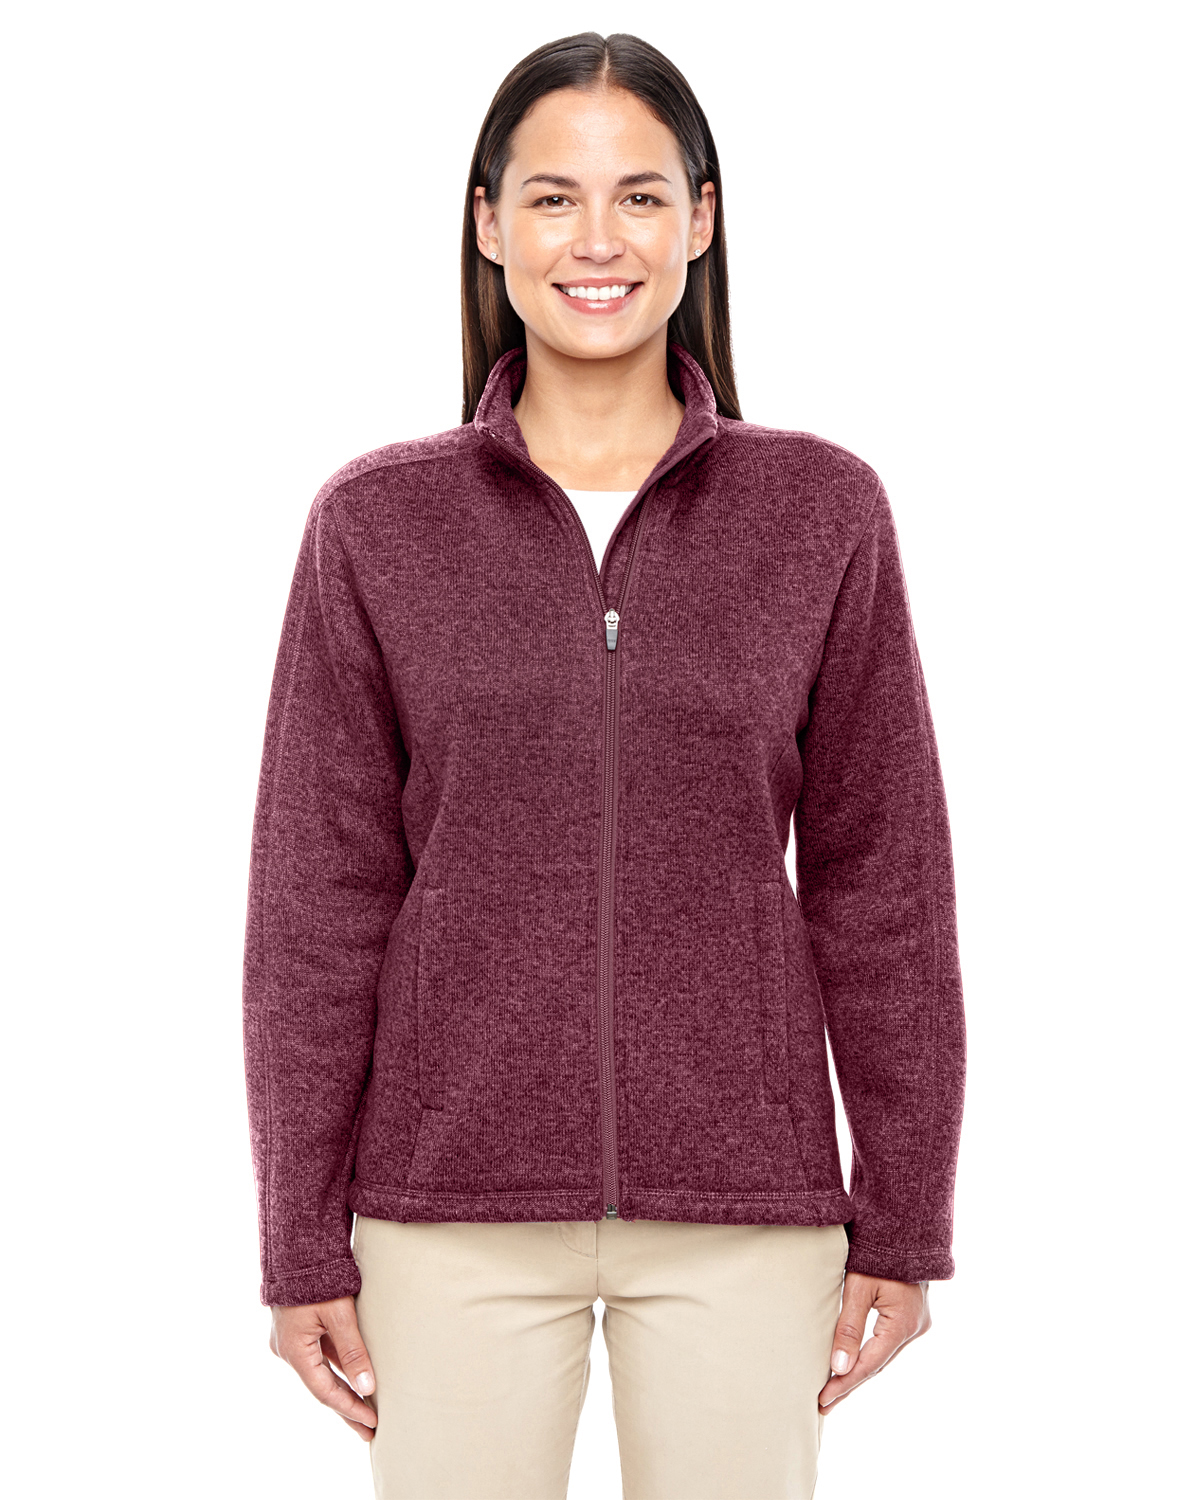 Devon & Jones - DG793W Ladies' Bristol Full-Zip Sweater Fleece Jacket, Pensacola, Embroidery, Screen Printing, Logo Masters International